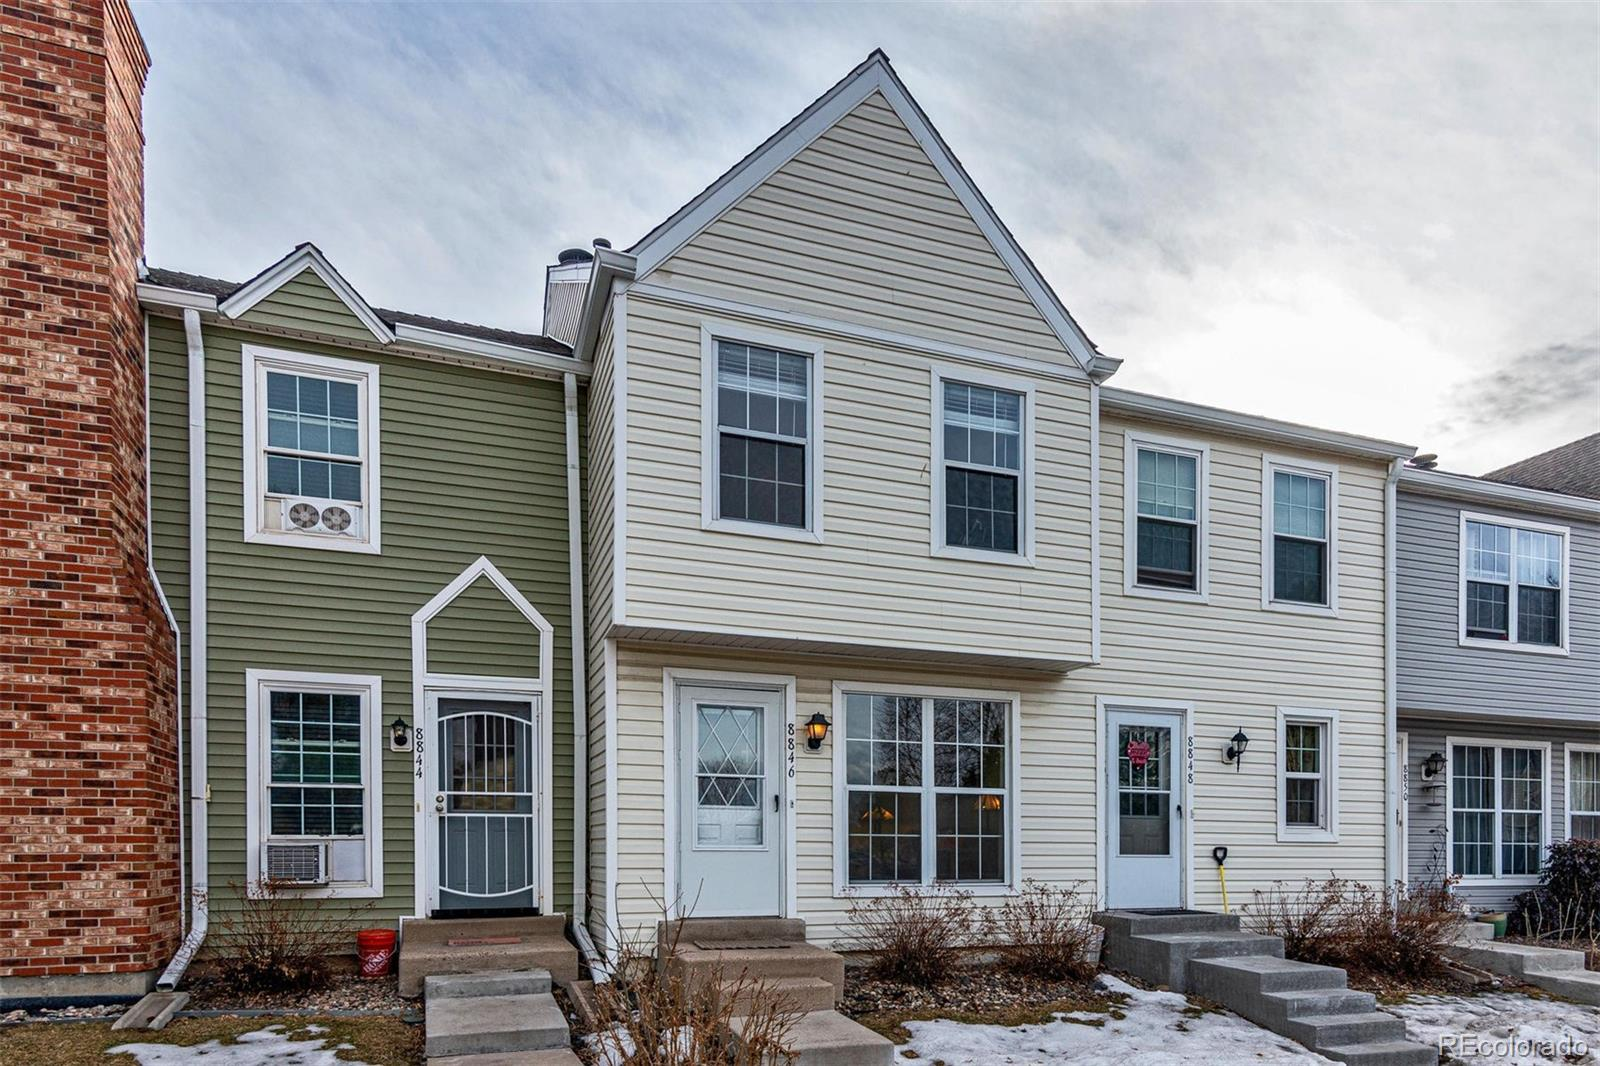 MLS# 6379353 - 3 - 8846 W Dartmouth Place, Lakewood, CO 80227